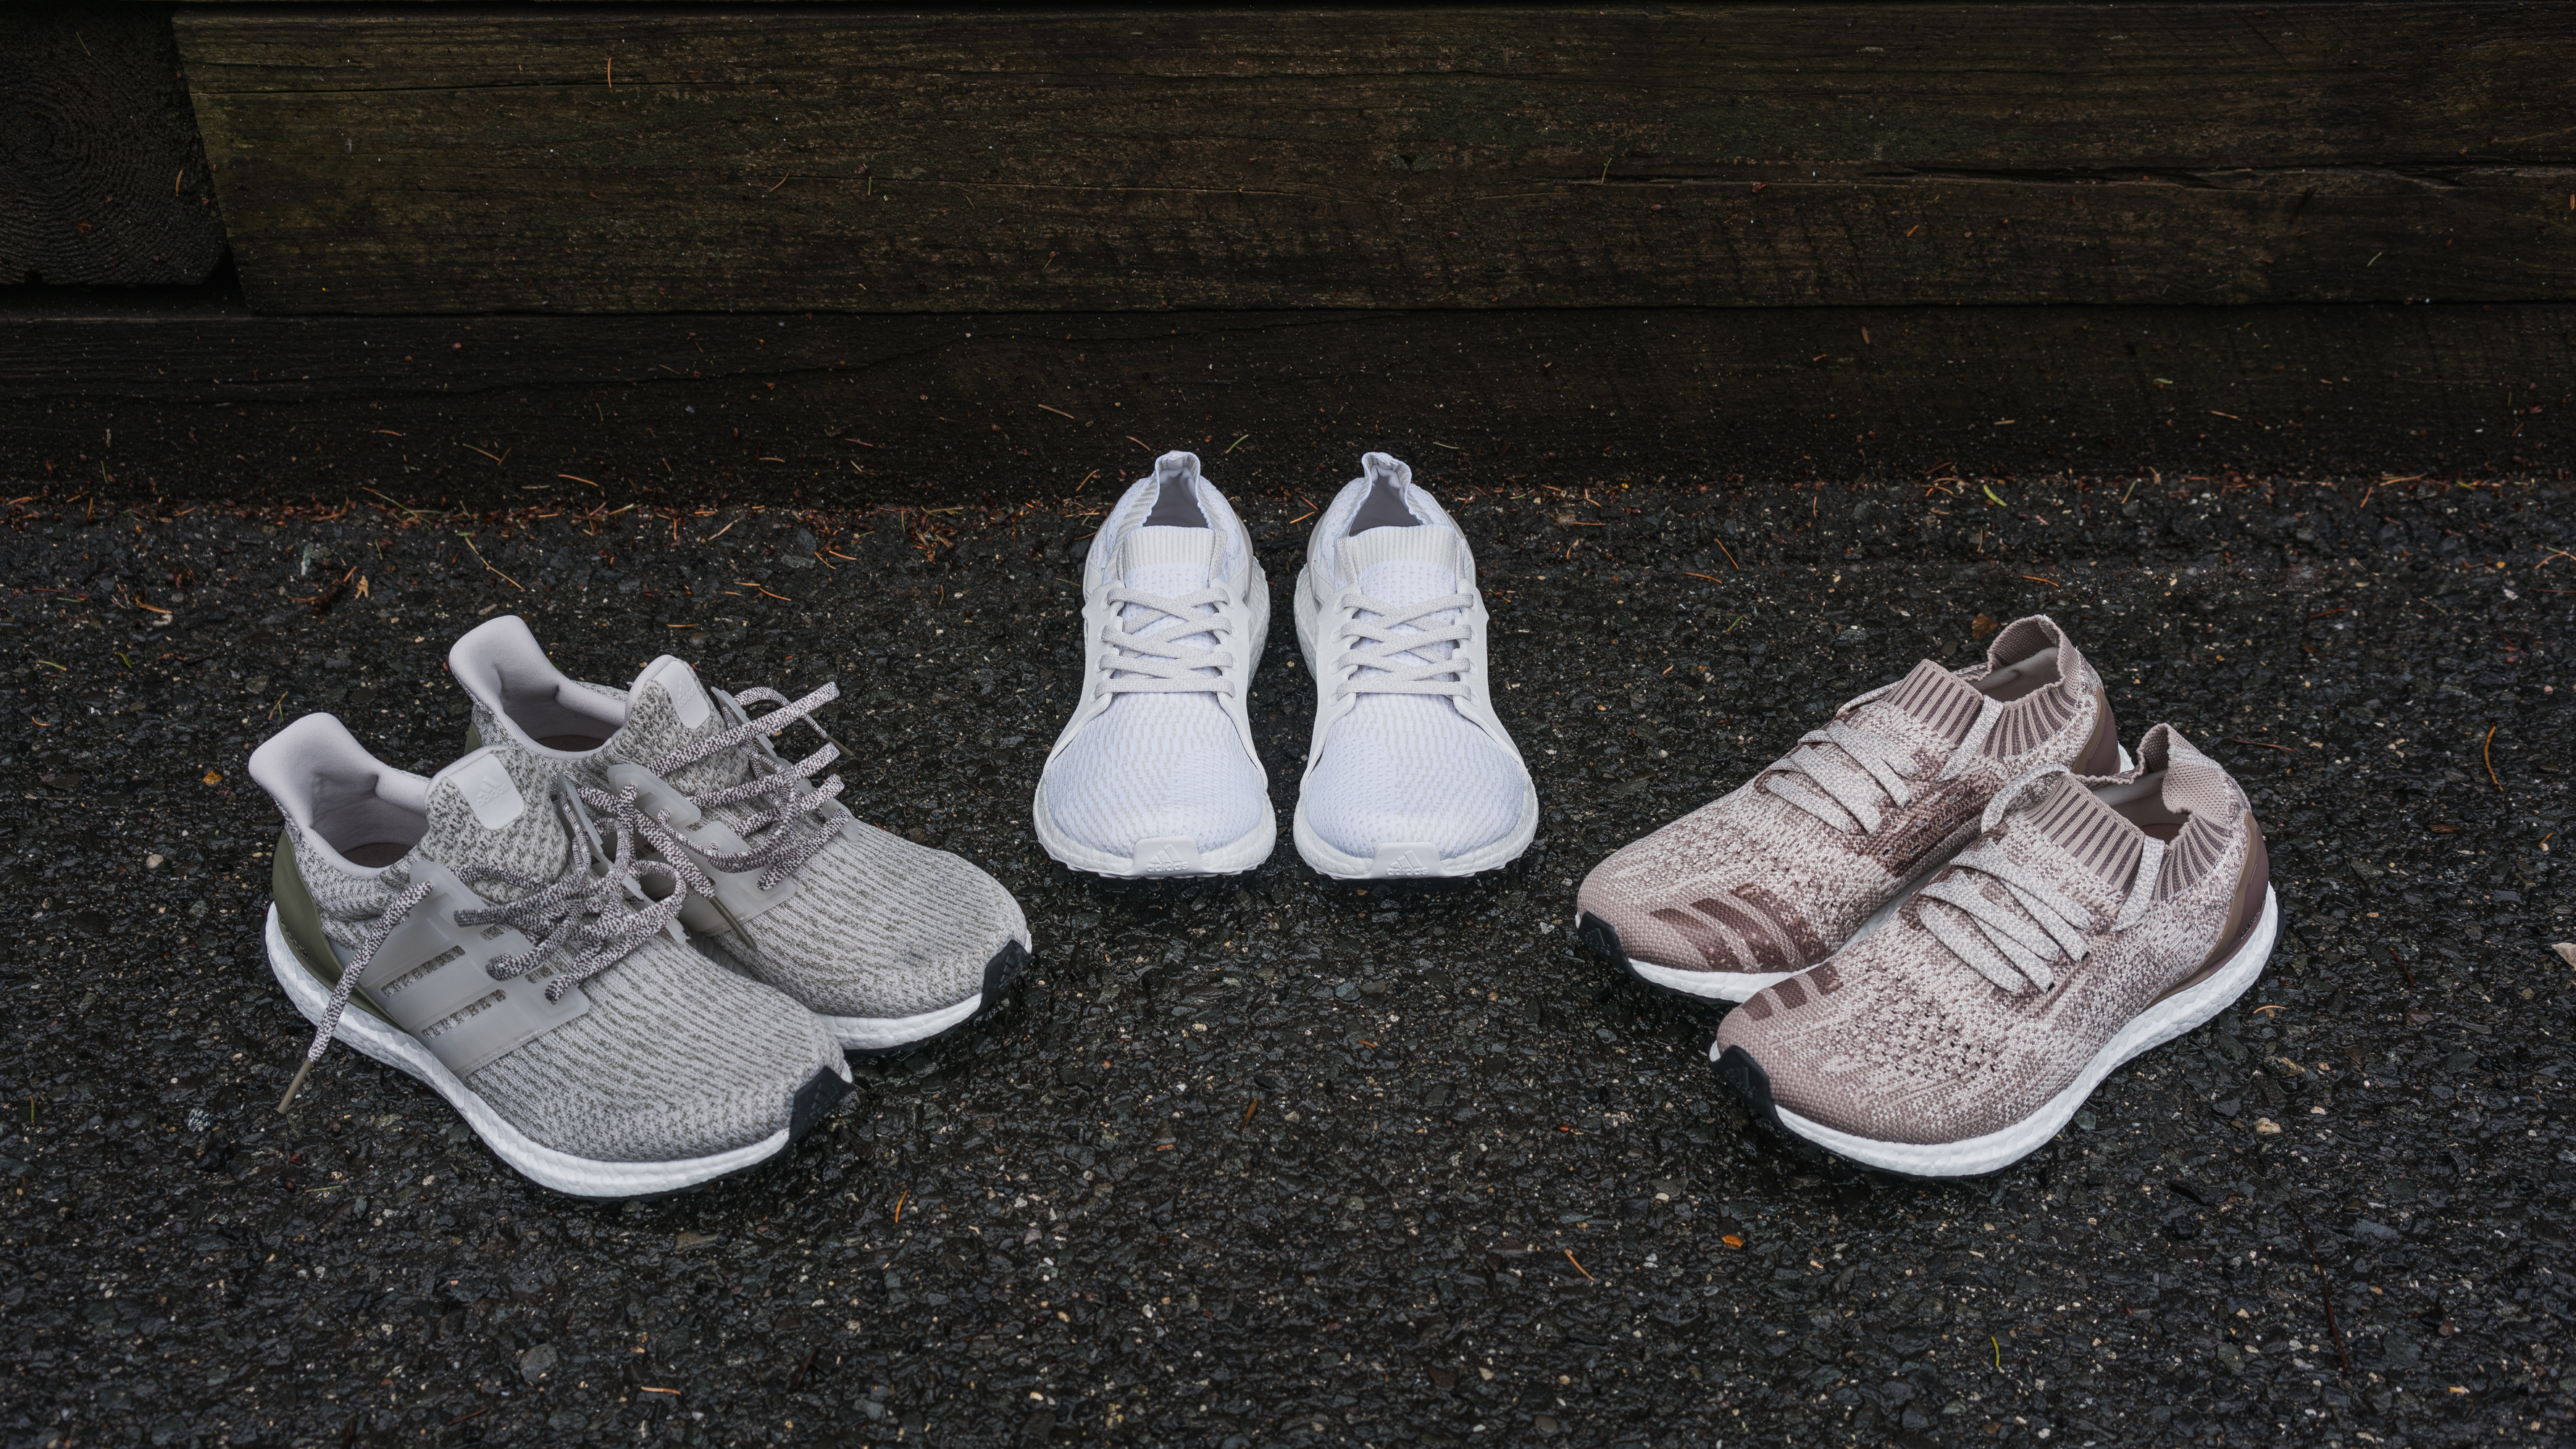 new styles 3e3da 2707a where can i buy adidas ultra boost uncaged ltd ftwr white crystal white  32206 587ff new zealand adidas running continues the onslaught of new boost  product ...